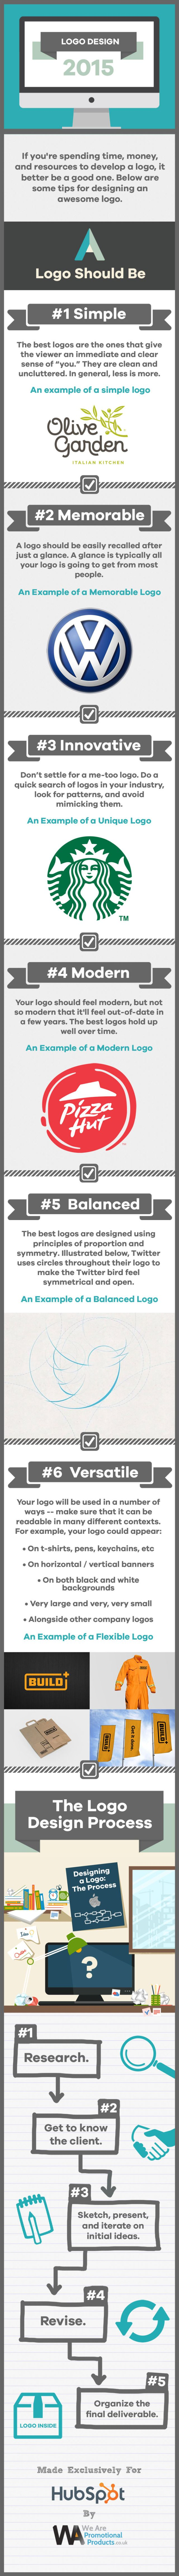 Rebranding in 2015 Here's 6 Tips to Create An Awesome Logo #Infographic